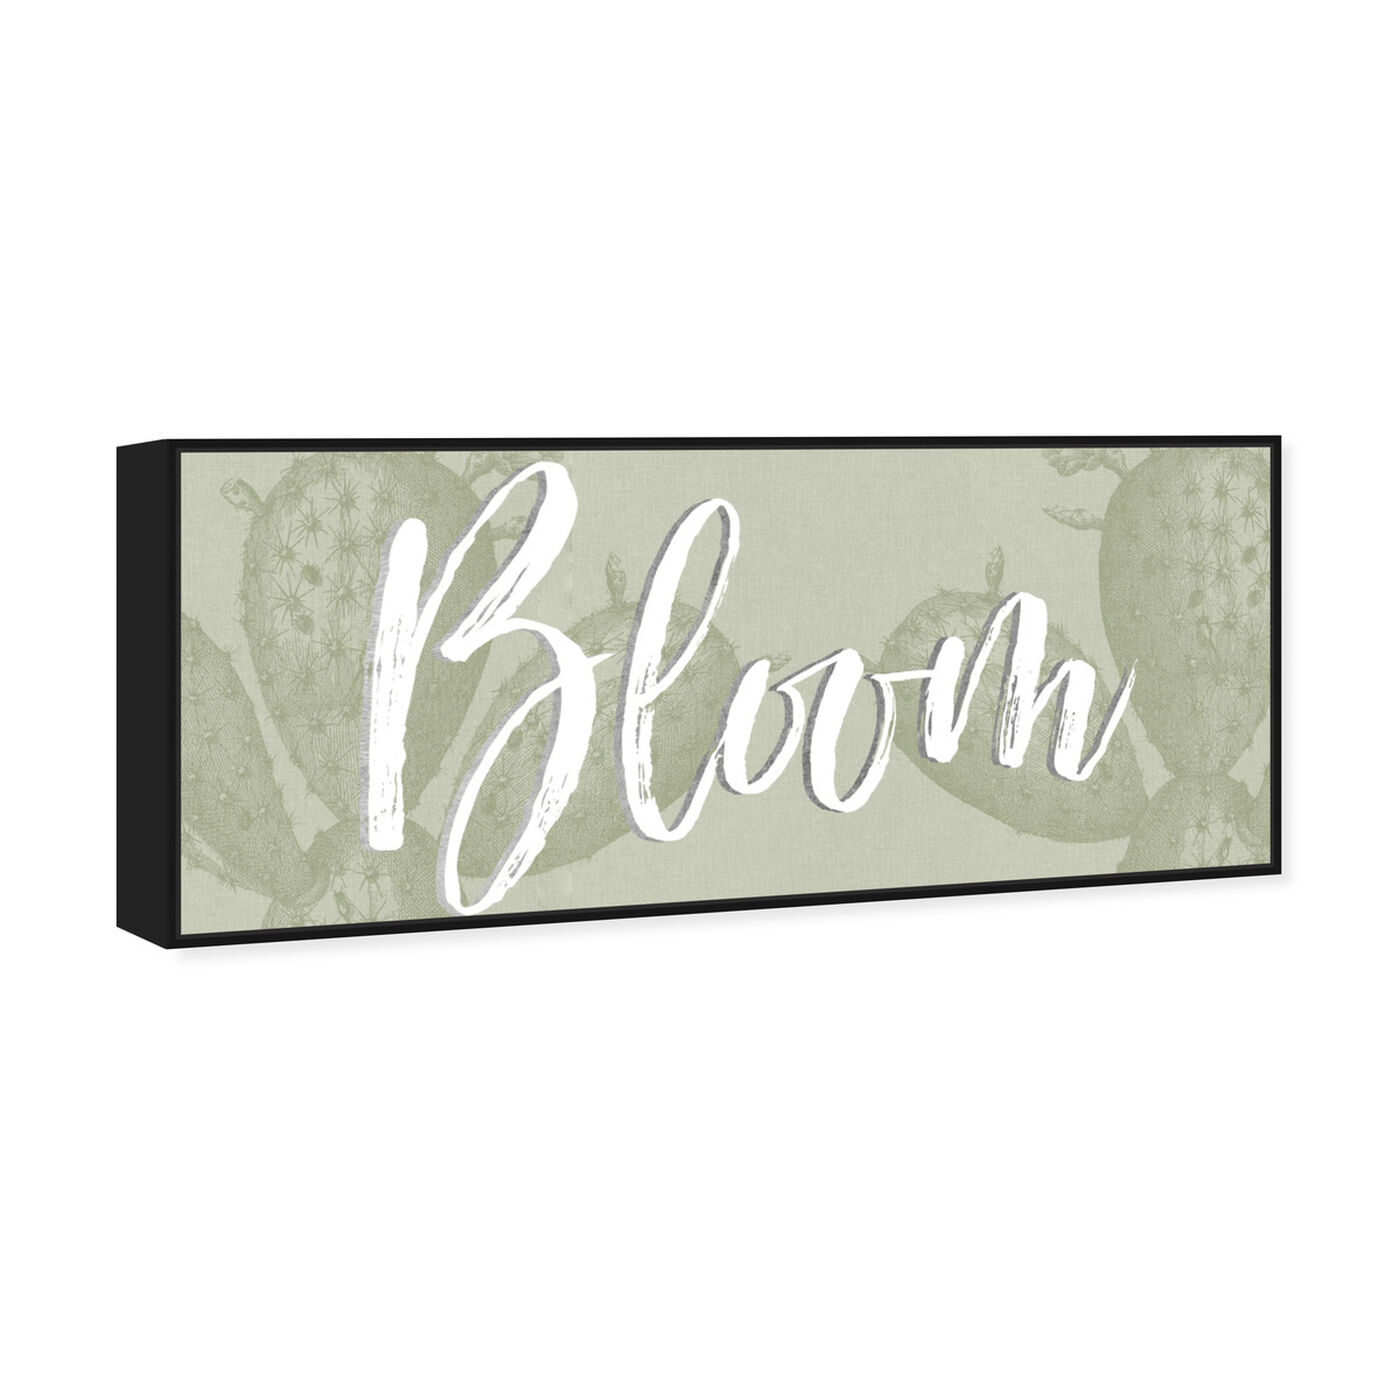 Angled view of Bloom Cactus featuring typography and quotes and quotes and sayings art.